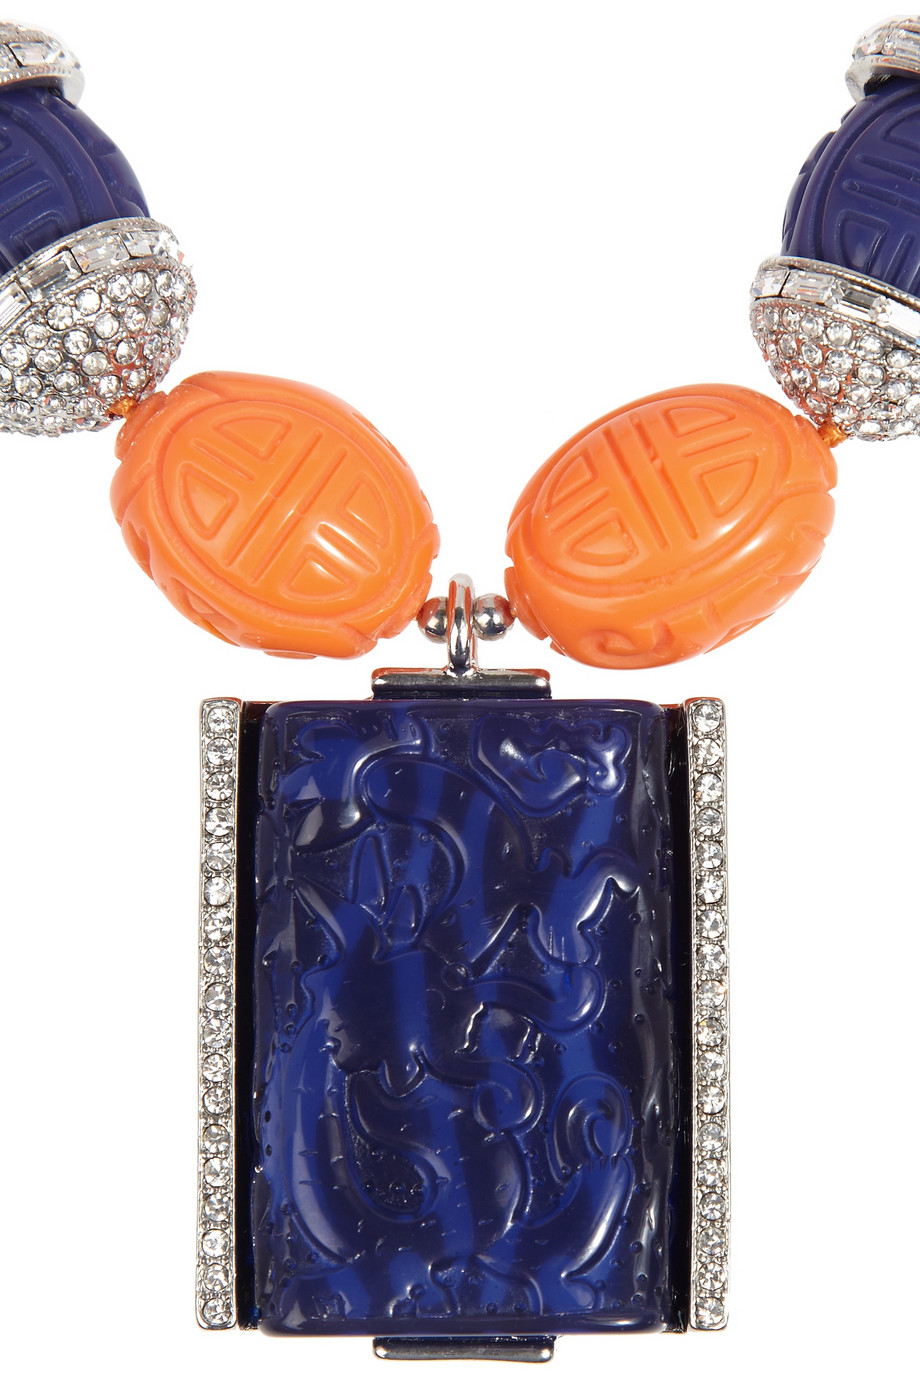 Kenneth Jay Lane Carved Bead and Crystal Necklace in Orange (Blue)